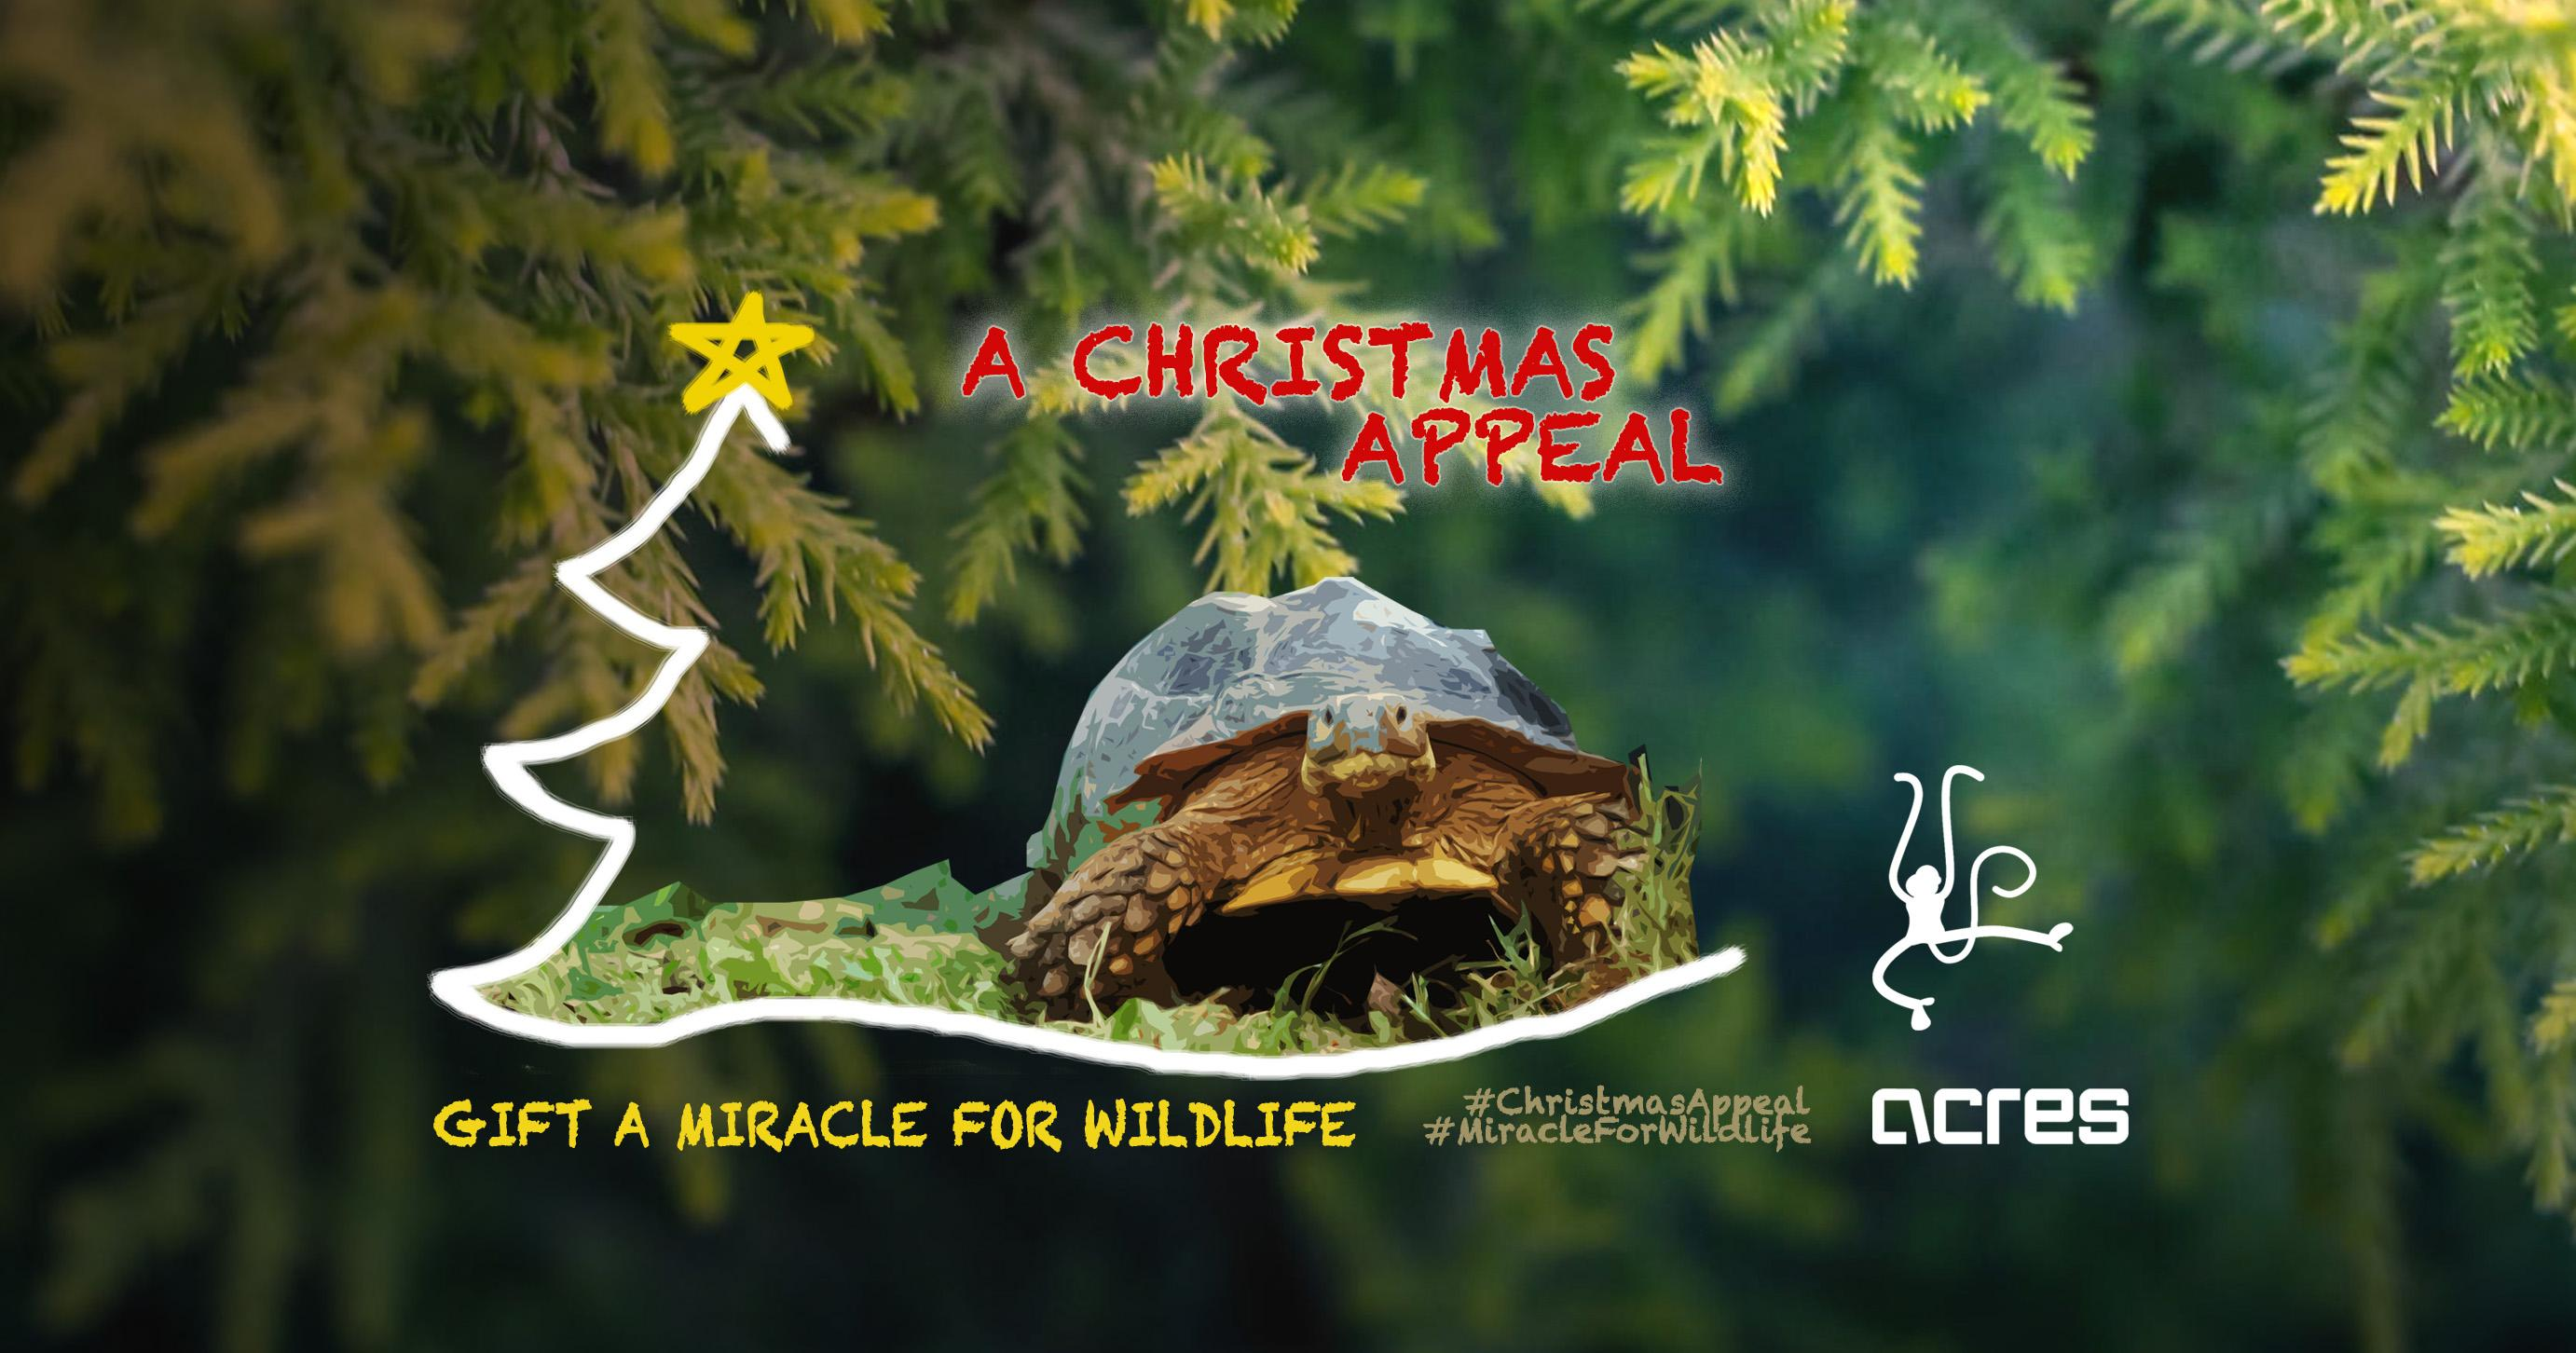 A CHRISTMAS APPEAL FOR ANIMALS By ACRES